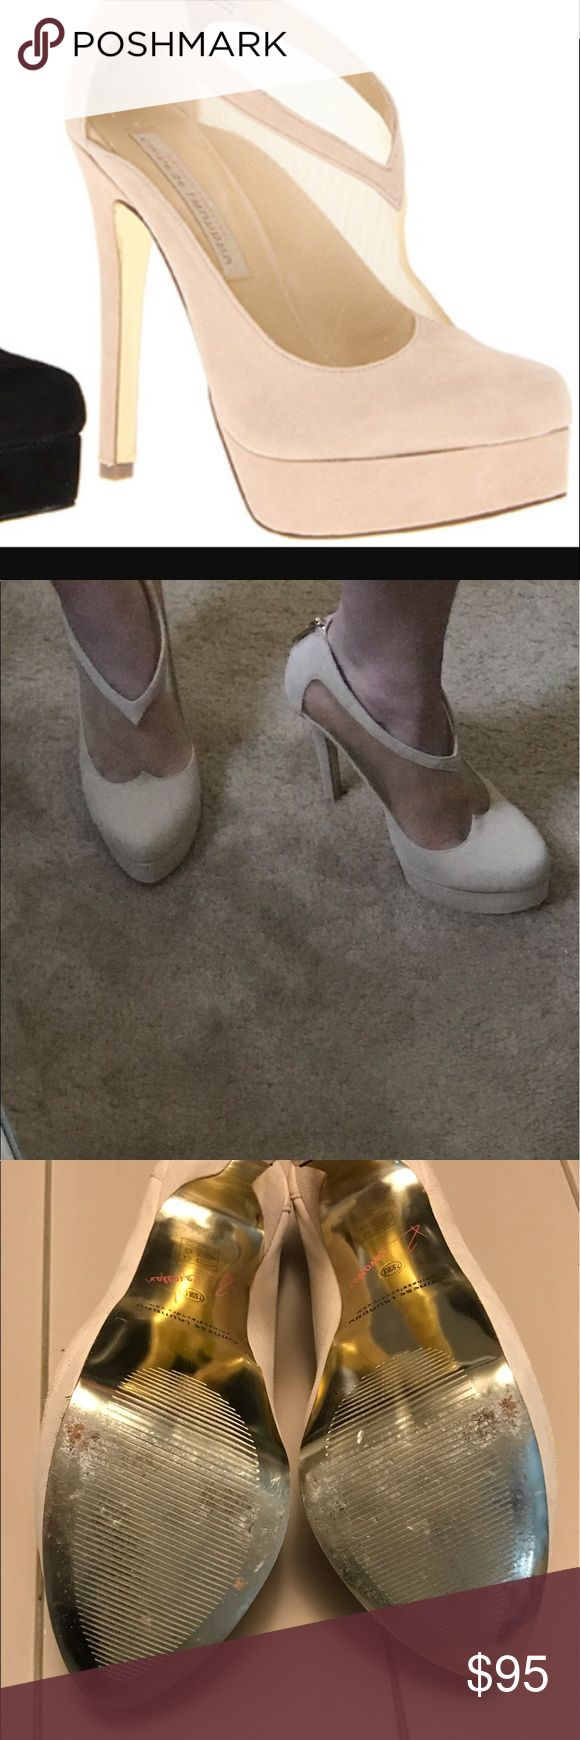 """Kristin Cavalari Chinese Laundry heels Almond toe ,mesh cutout ,back zipper,heel is approximately 5.25"""" and 1 inch platform. suedeike material wore 2x true to size kristin cavalari chinese laundry Shoes Heels"""